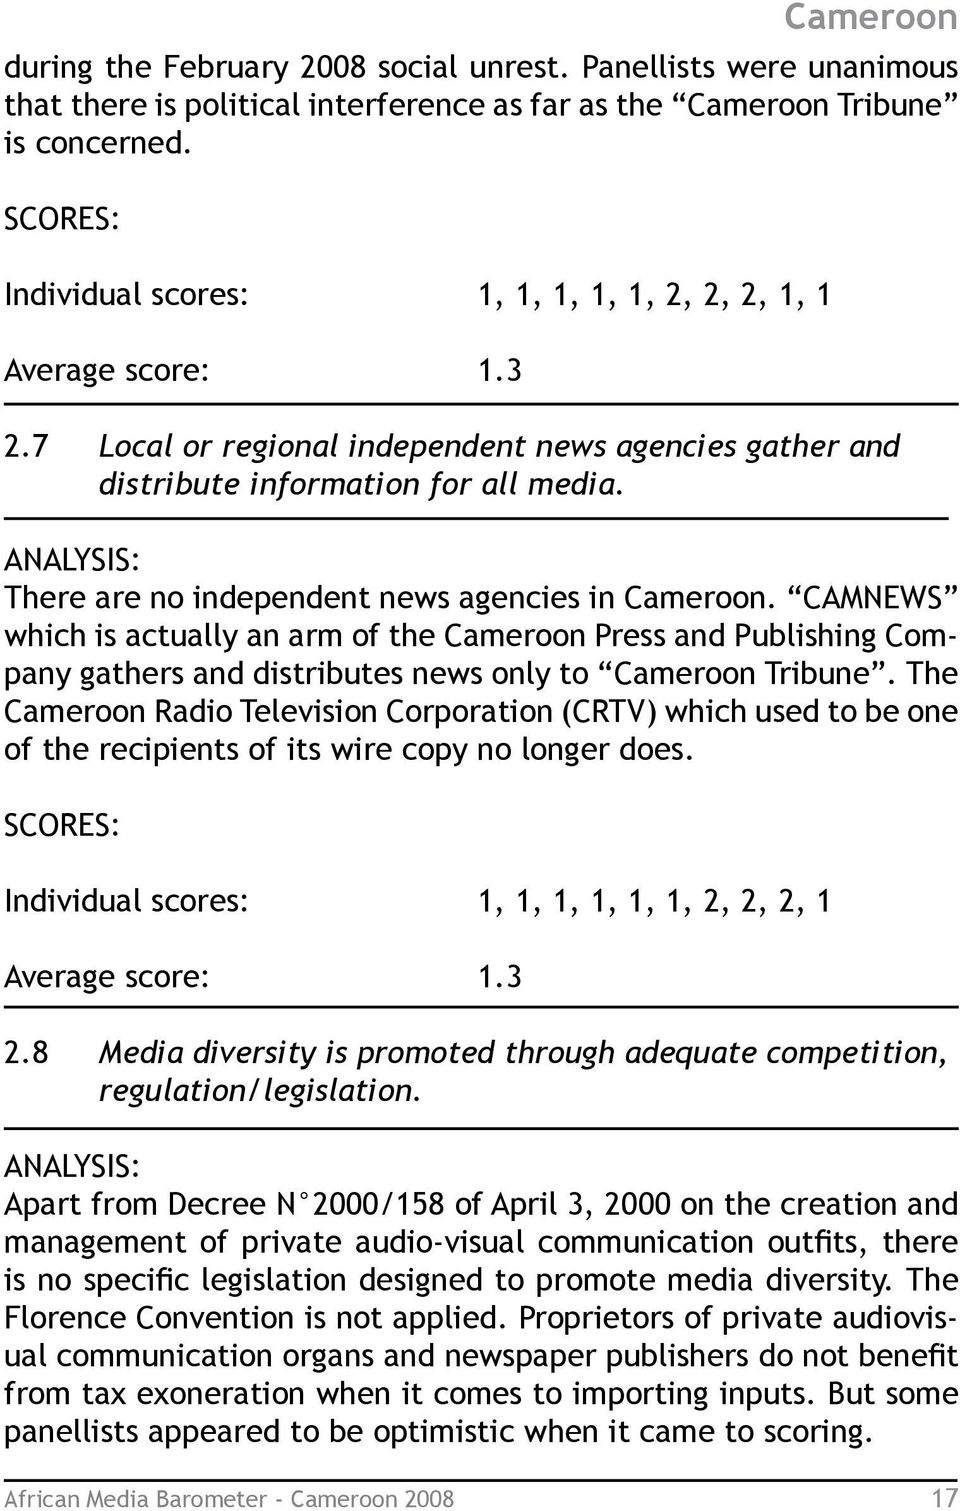 ANALYSIS: There are no independent news agencies in Cameroon. CAMNEWS which is actually an arm of the Cameroon Press and Publishing Company gathers and distributes news only to Cameroon Tribune.